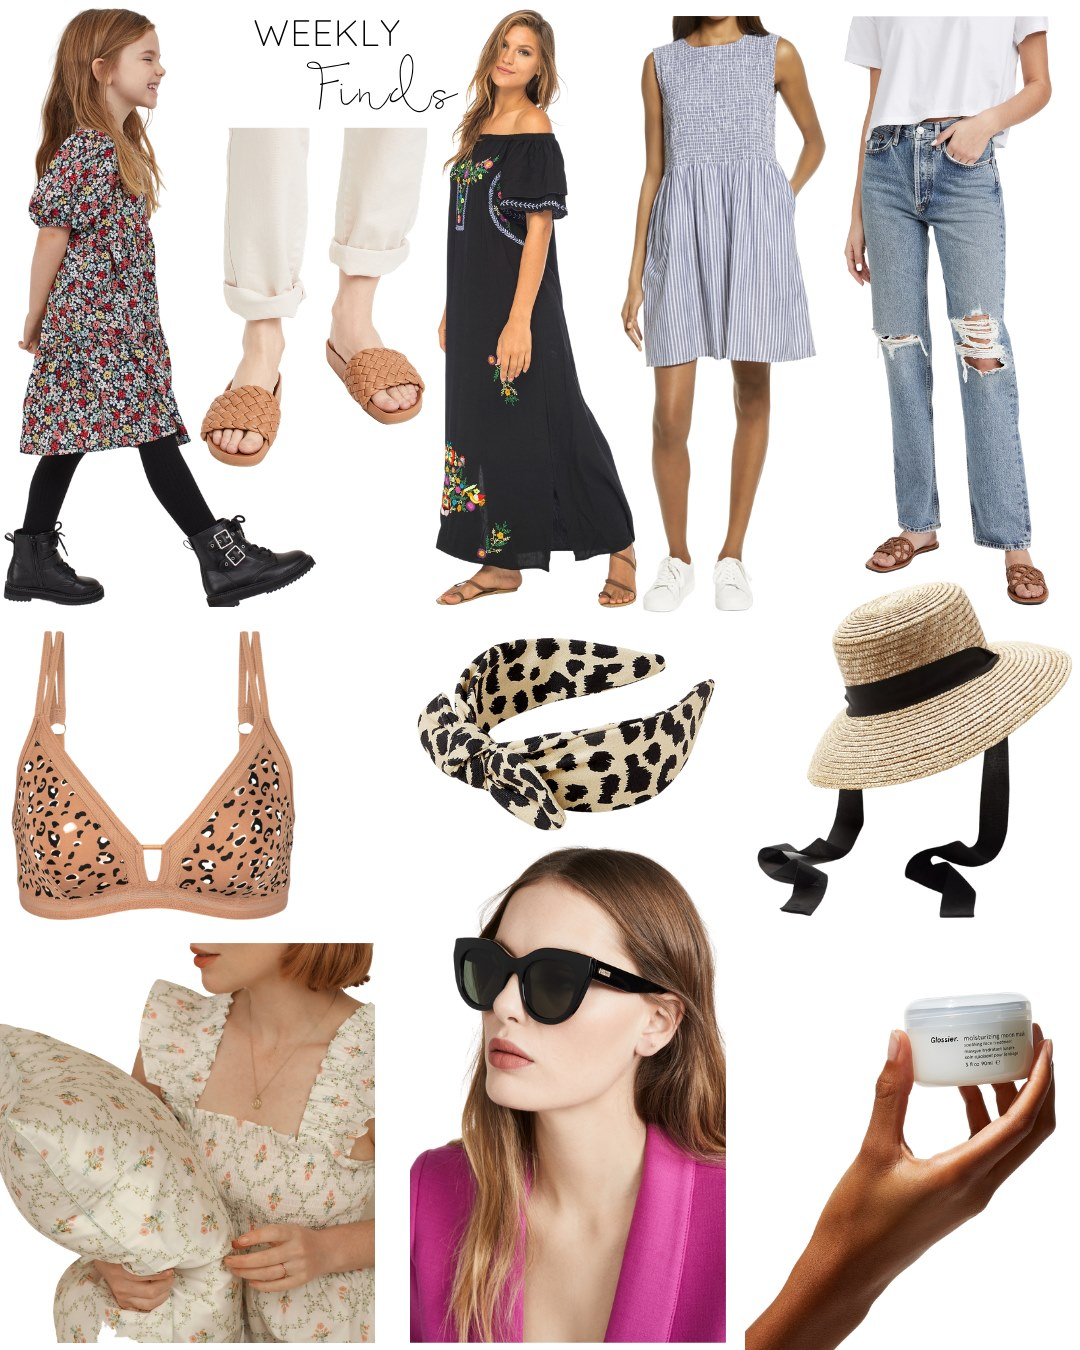 Here are the weekly finds that I'm loving this week (including a few must-have spring accessories) …